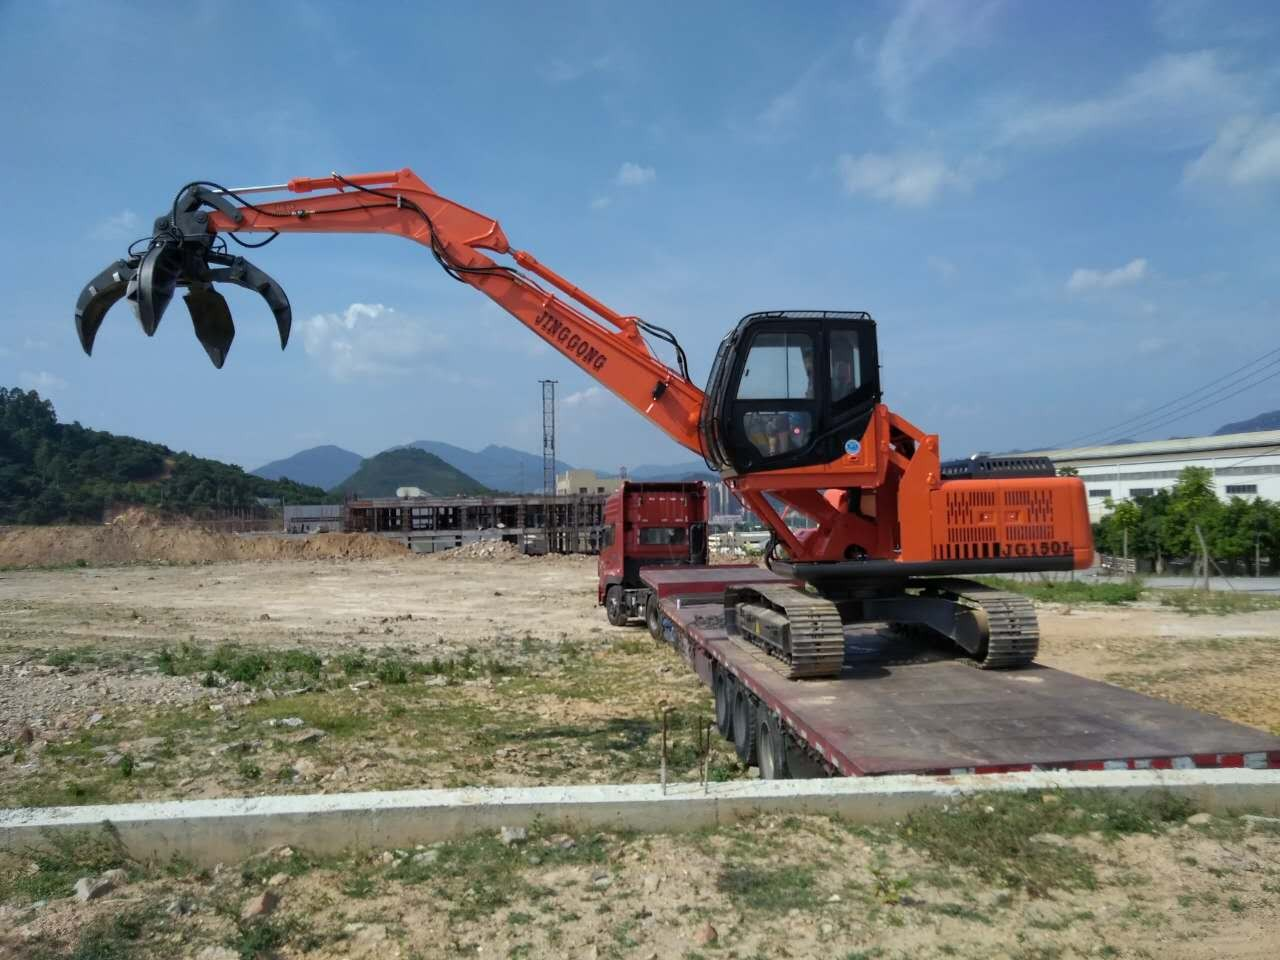 Excavator with Orange Peel Grapple for Grabing Metal Scraps